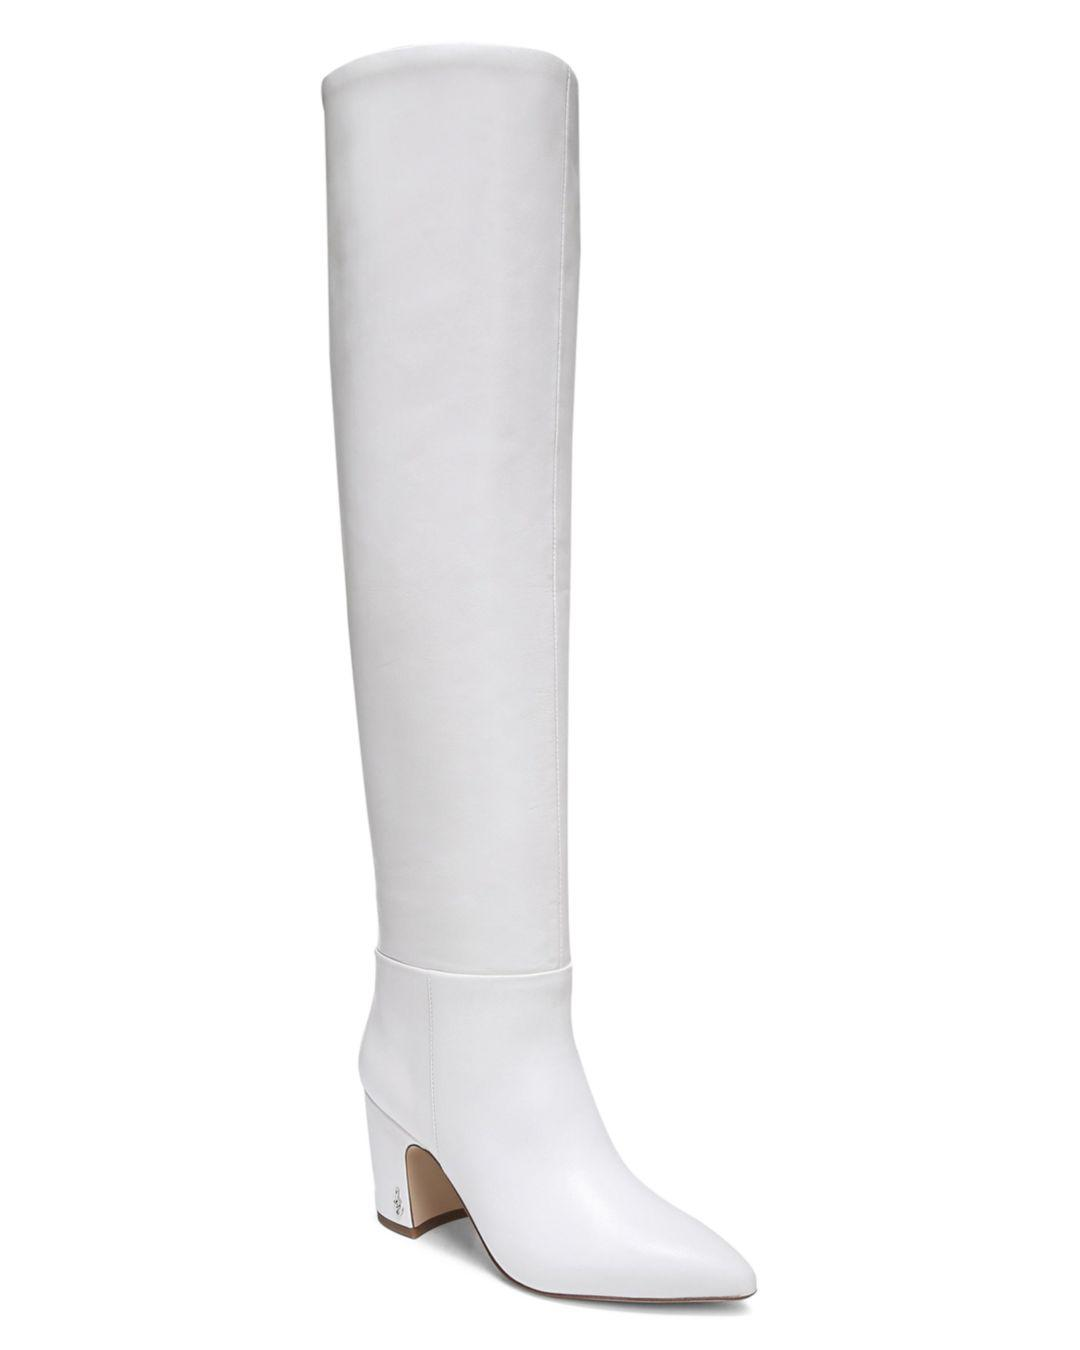 White Leather Boots Women